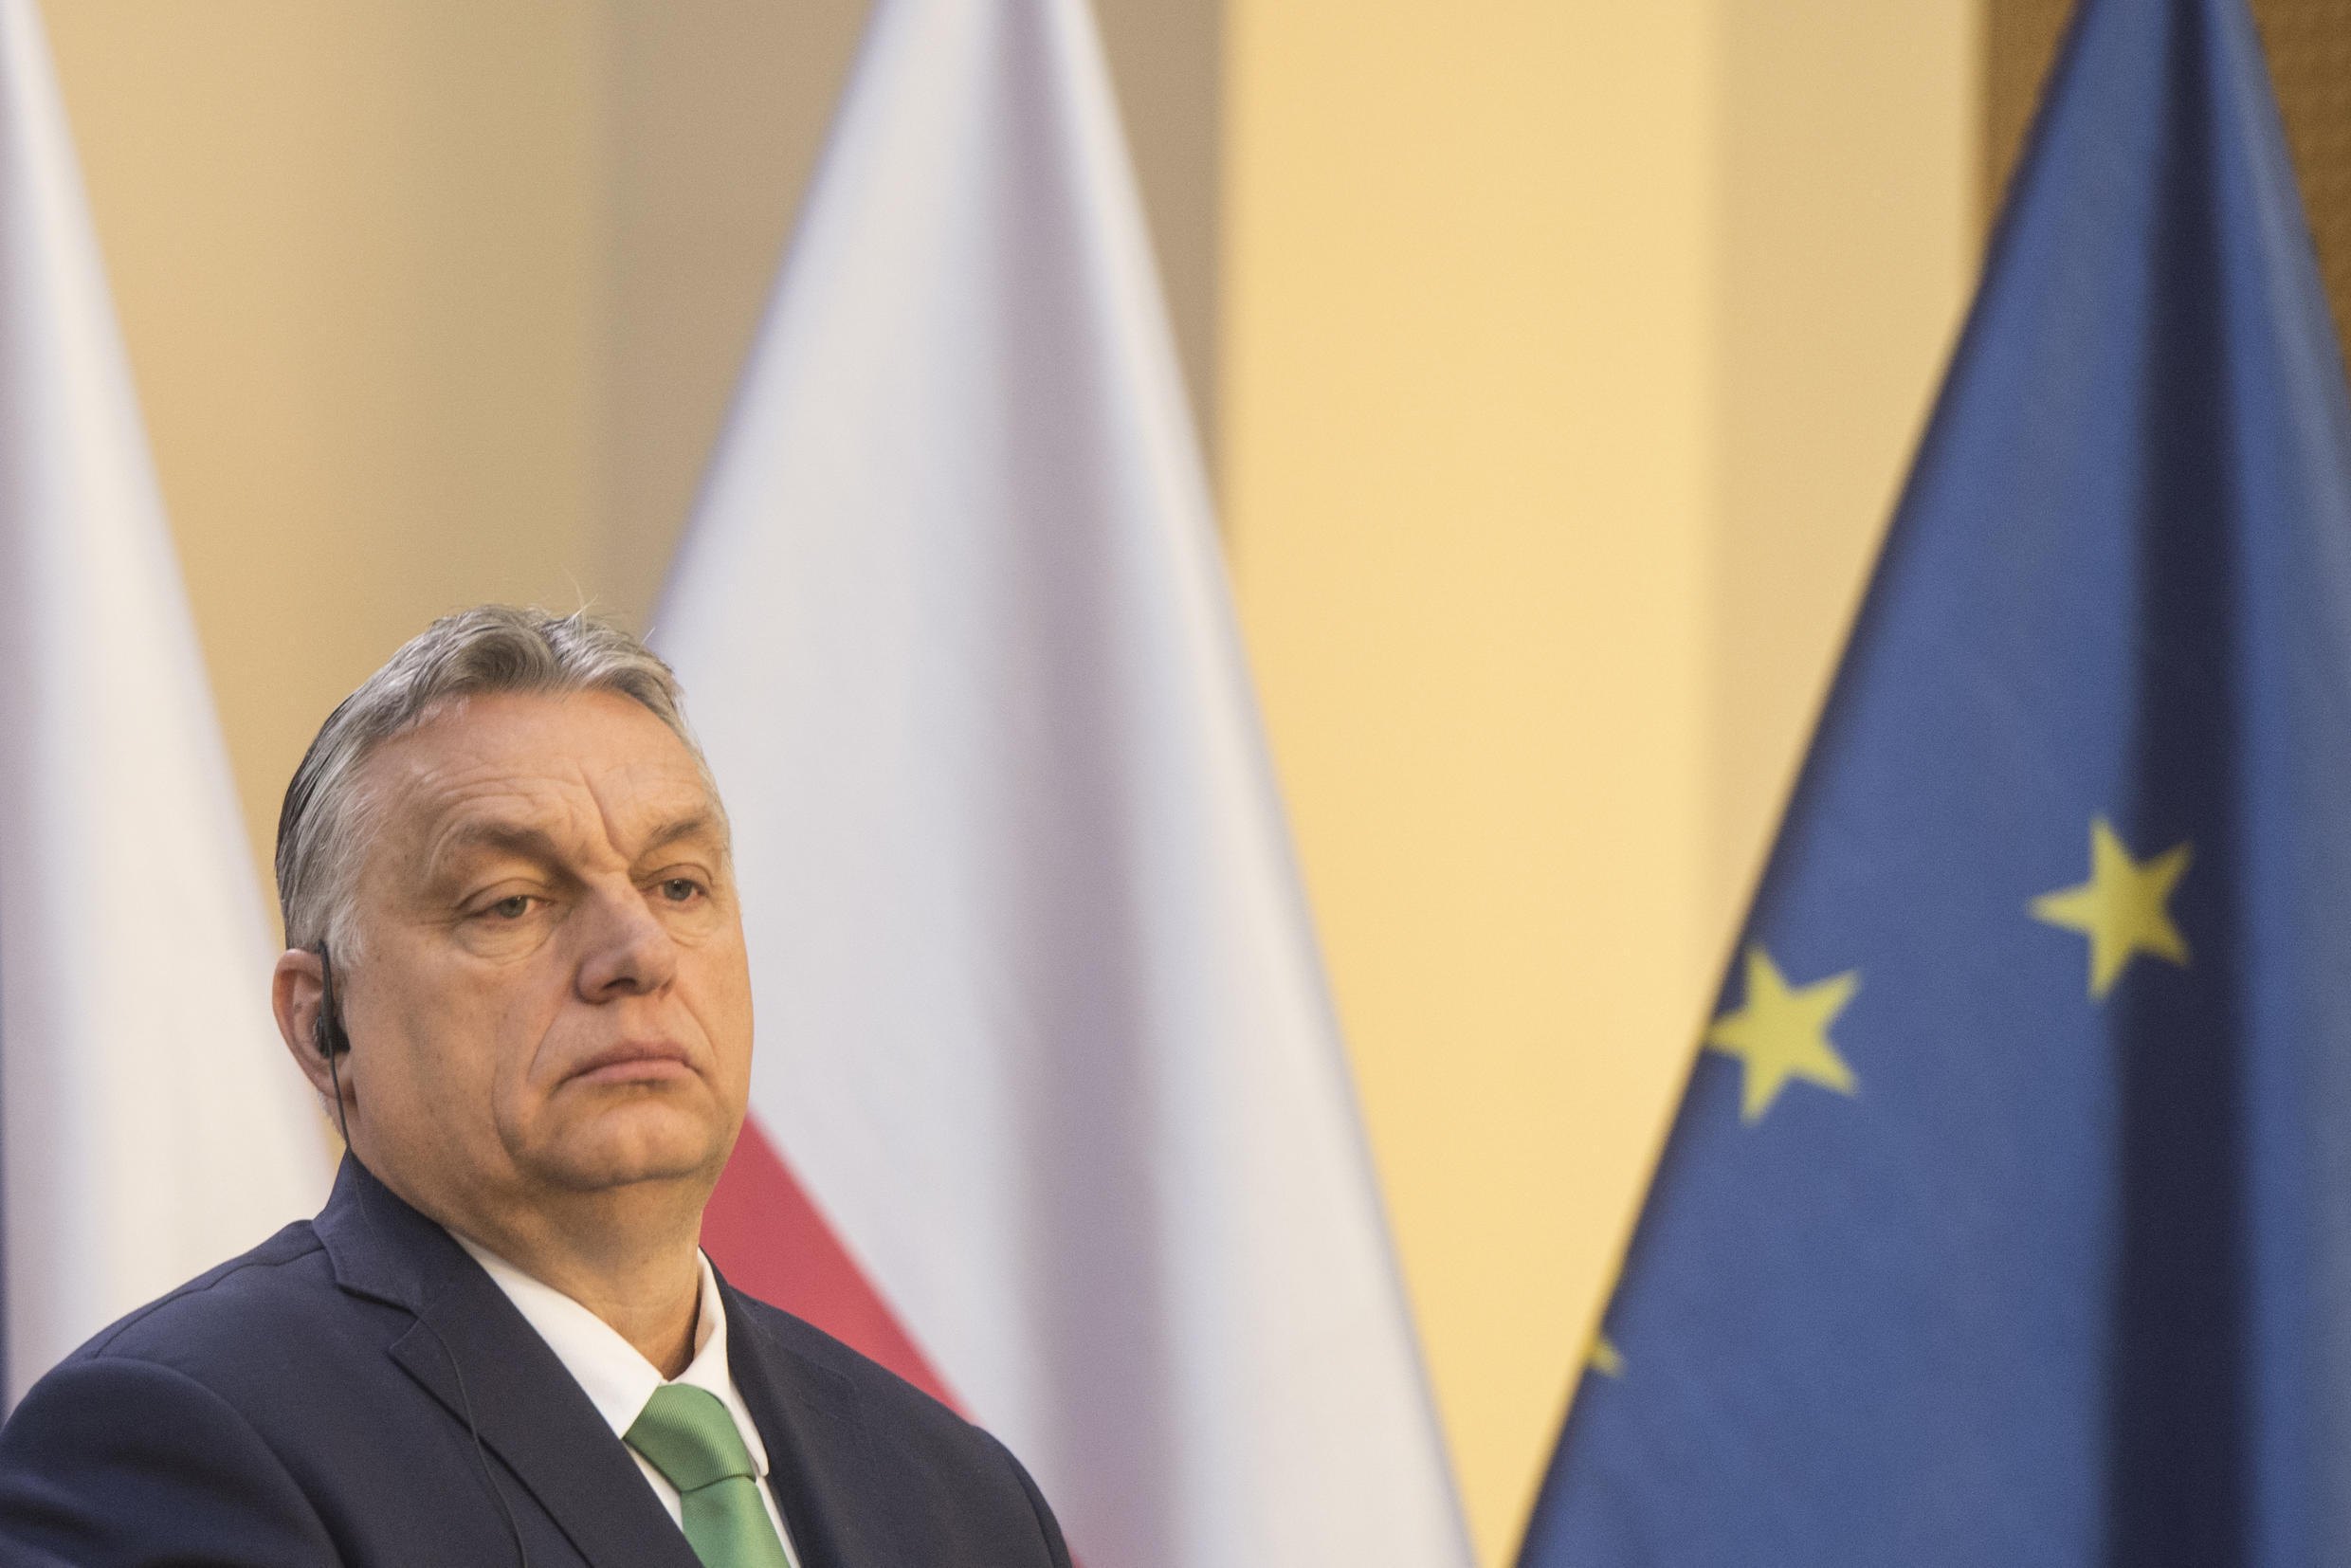 """Hungary's Prime Minister Viktor Orban could seize effectively unchecked power if his parliament extends his """"coronavirus law"""", experts warn"""